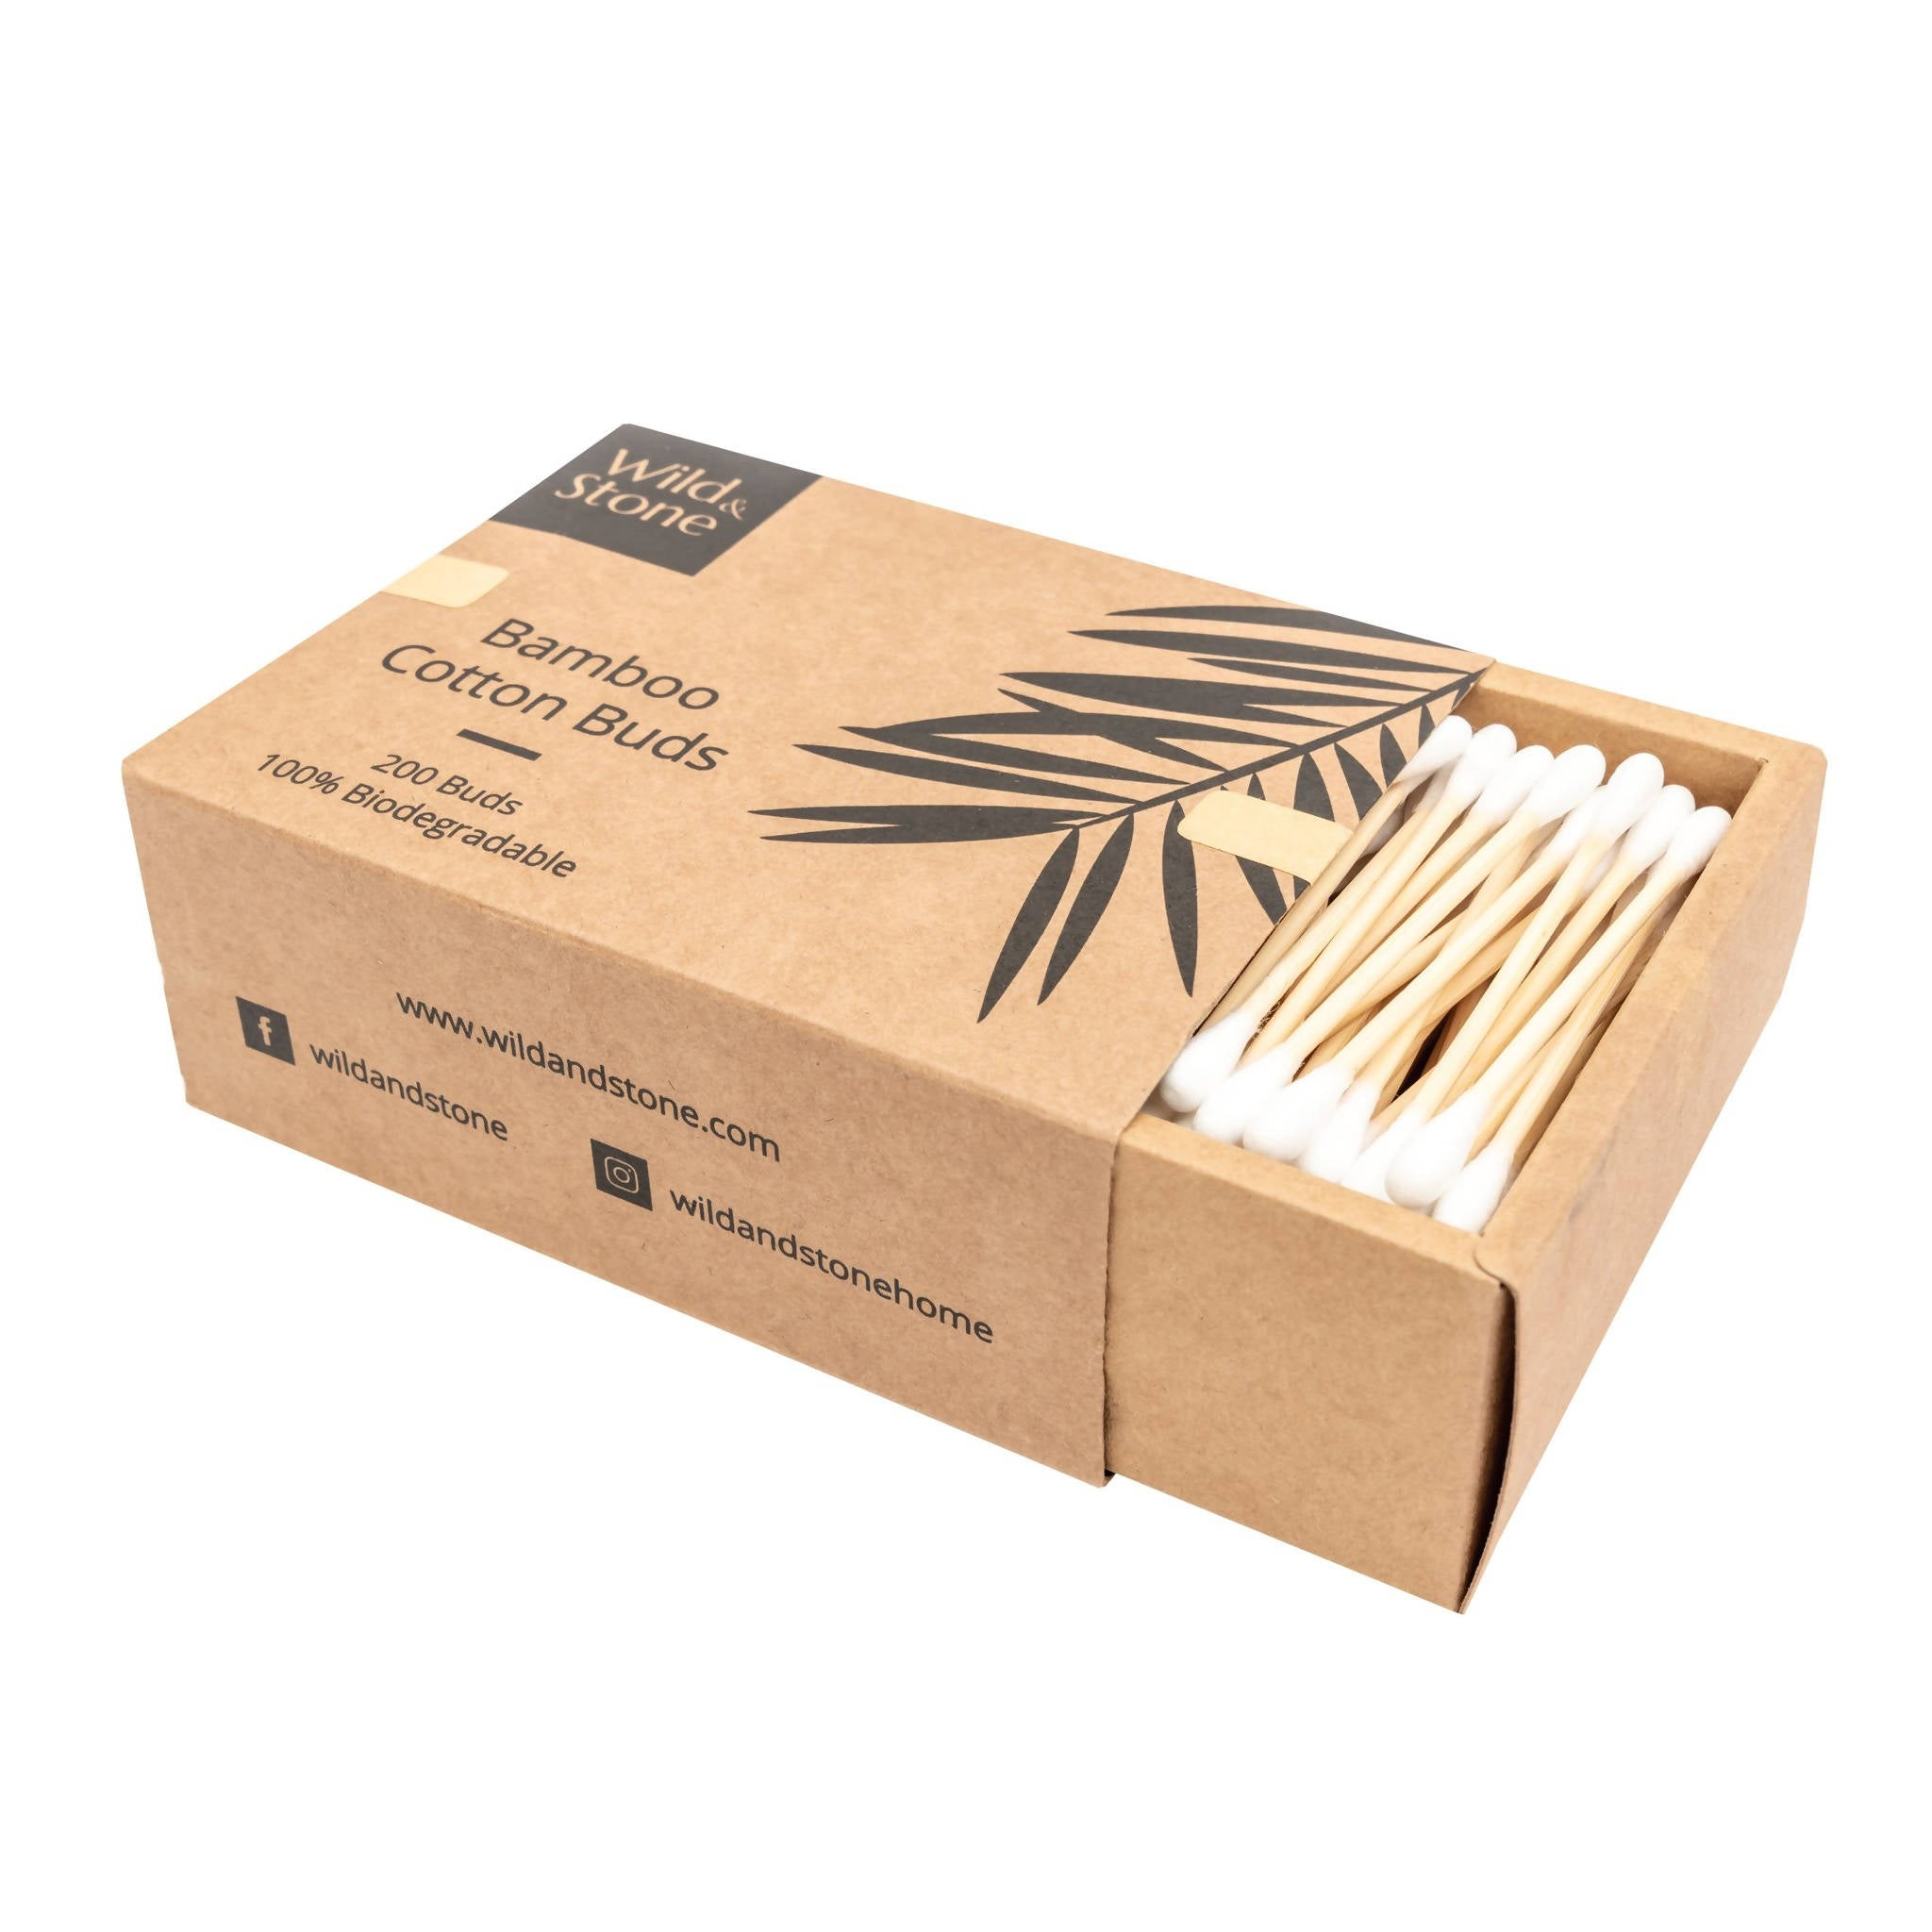 Bamboo Cotton Buds - Biodegradable & Vegan - 200 Pack